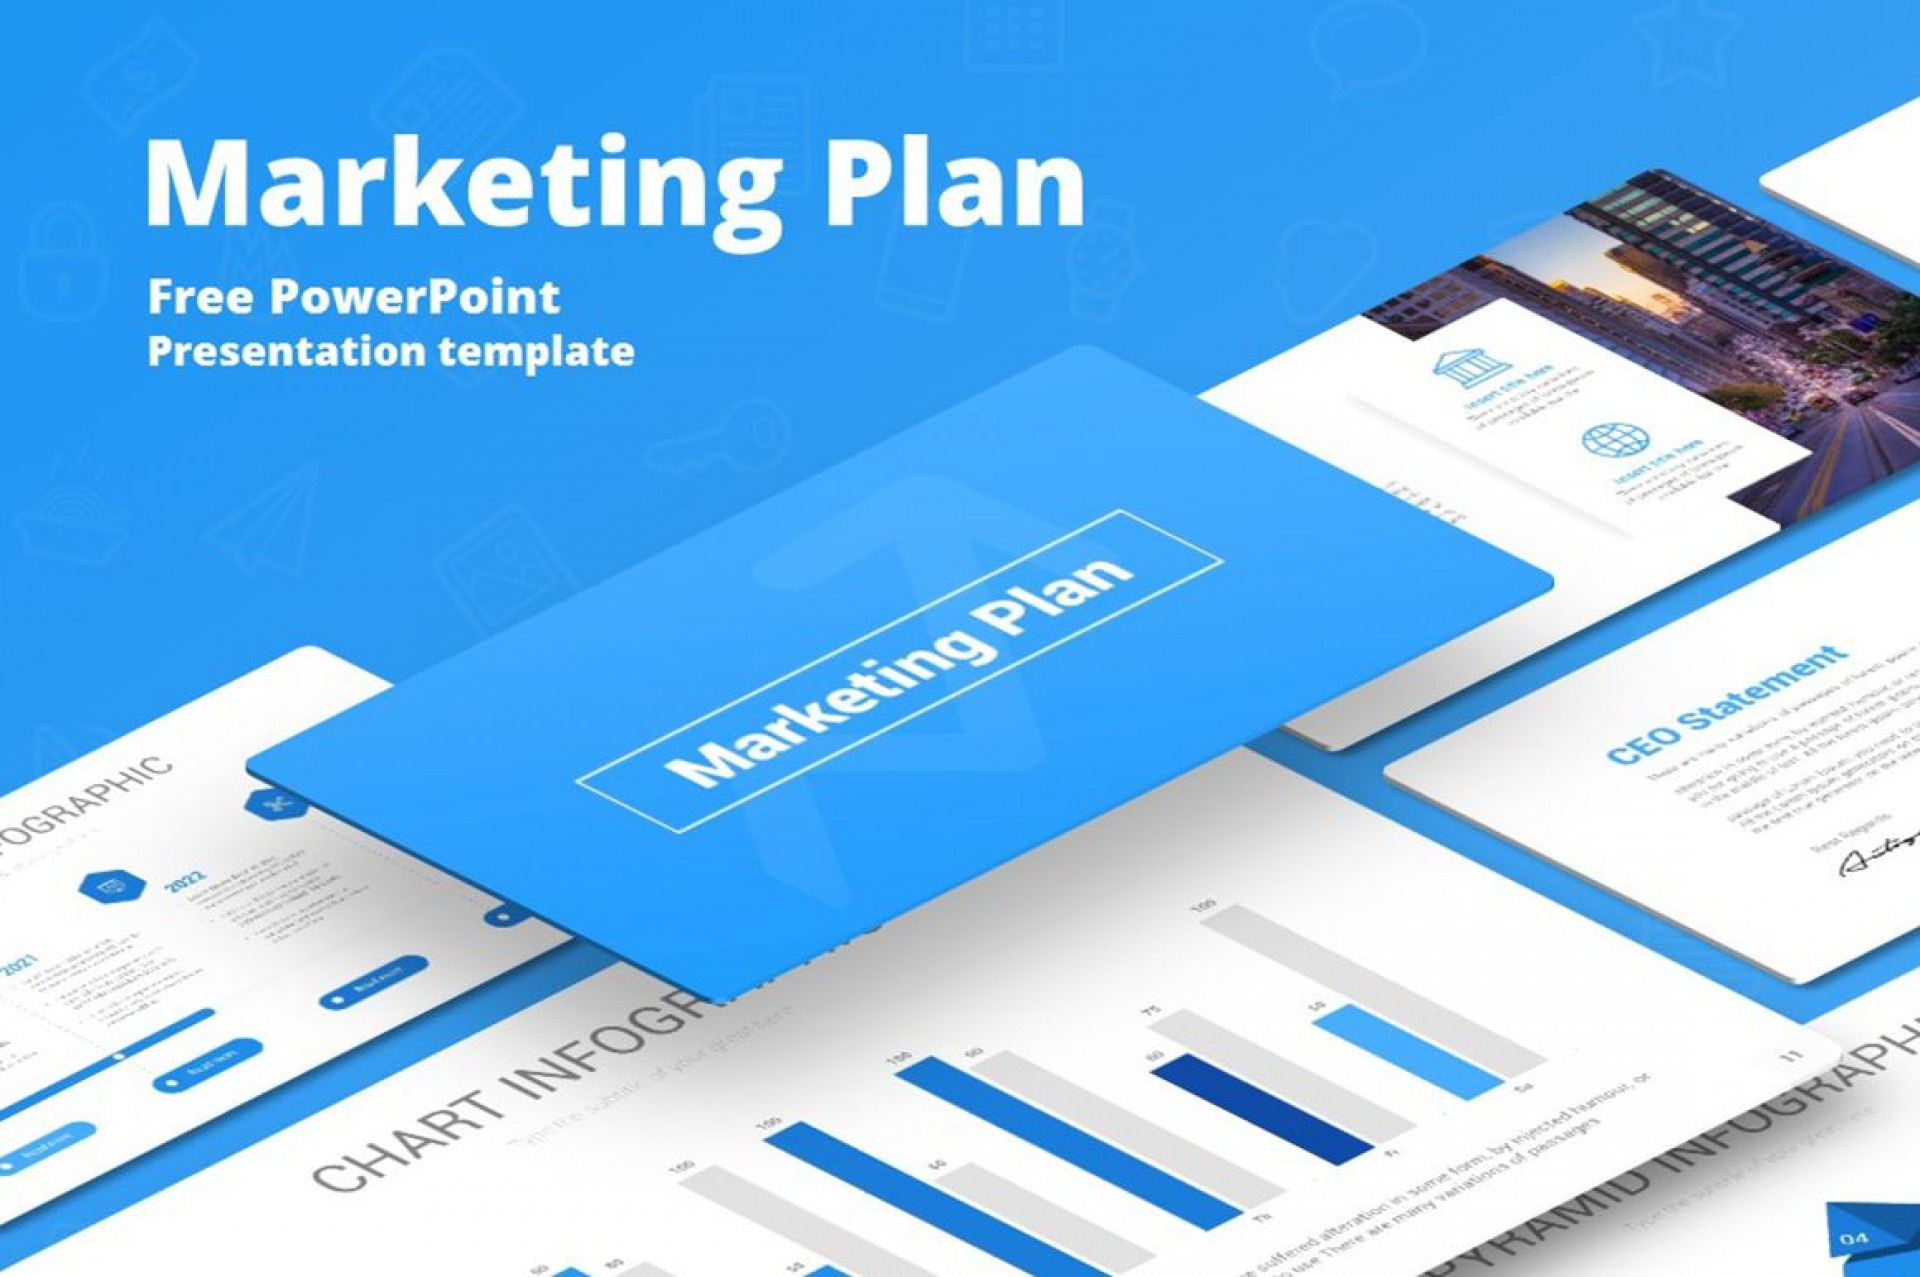 008 Breathtaking Marketing Plan Template Free Powerpoint Design  Download1920